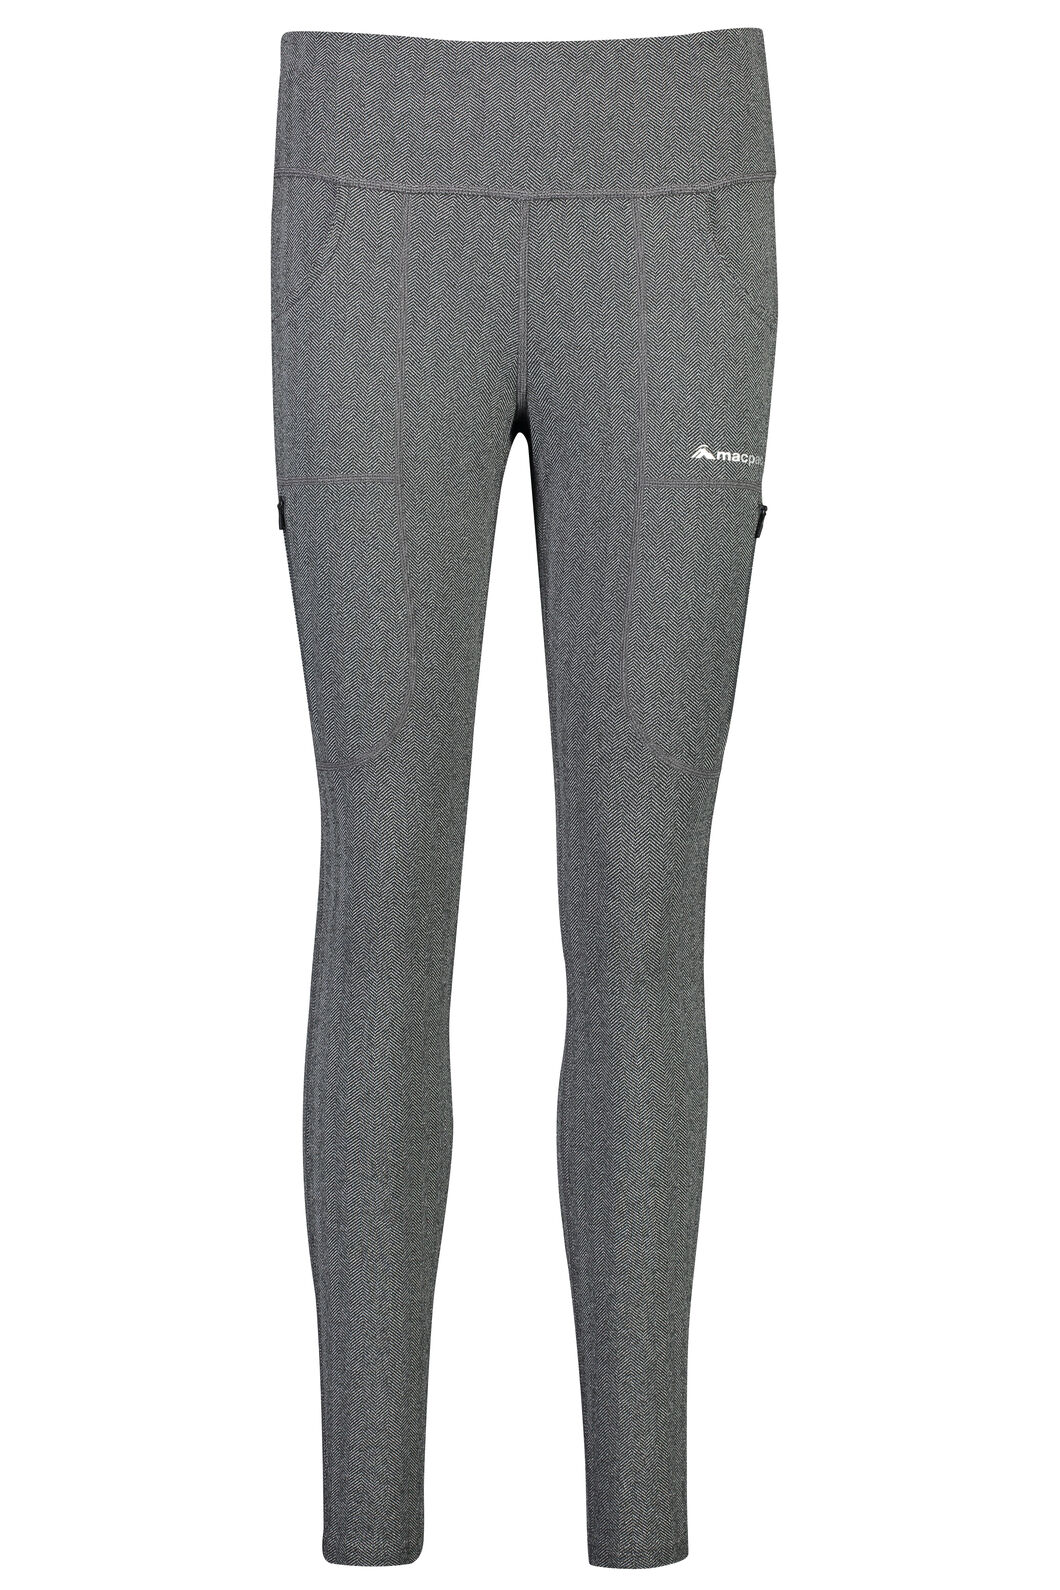 Wander Tights - Women's, Chariak, hi-res